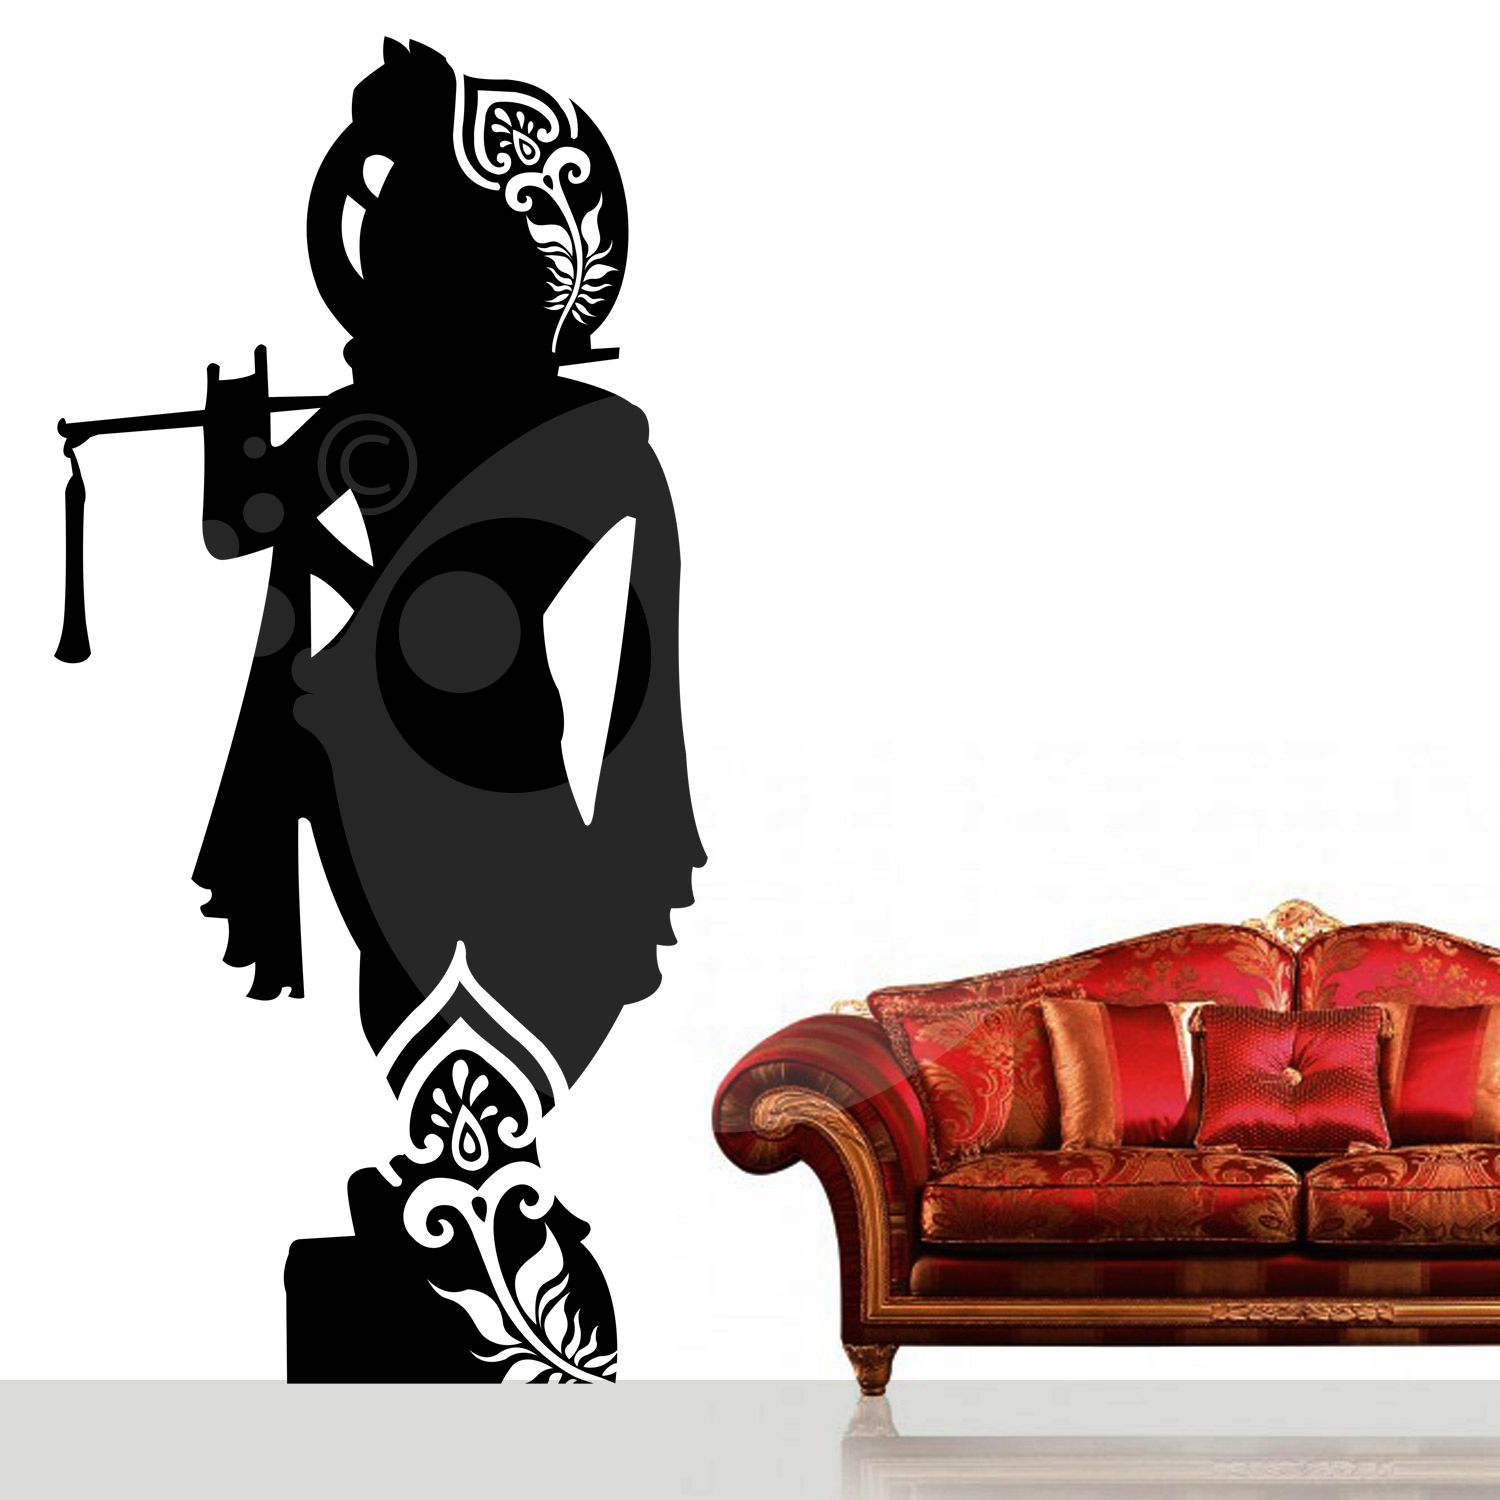 31a1f6bc23 With this Lord Krishna Wall Sticker Decal you can decorate your walls in  one of the most modern and elegant ways